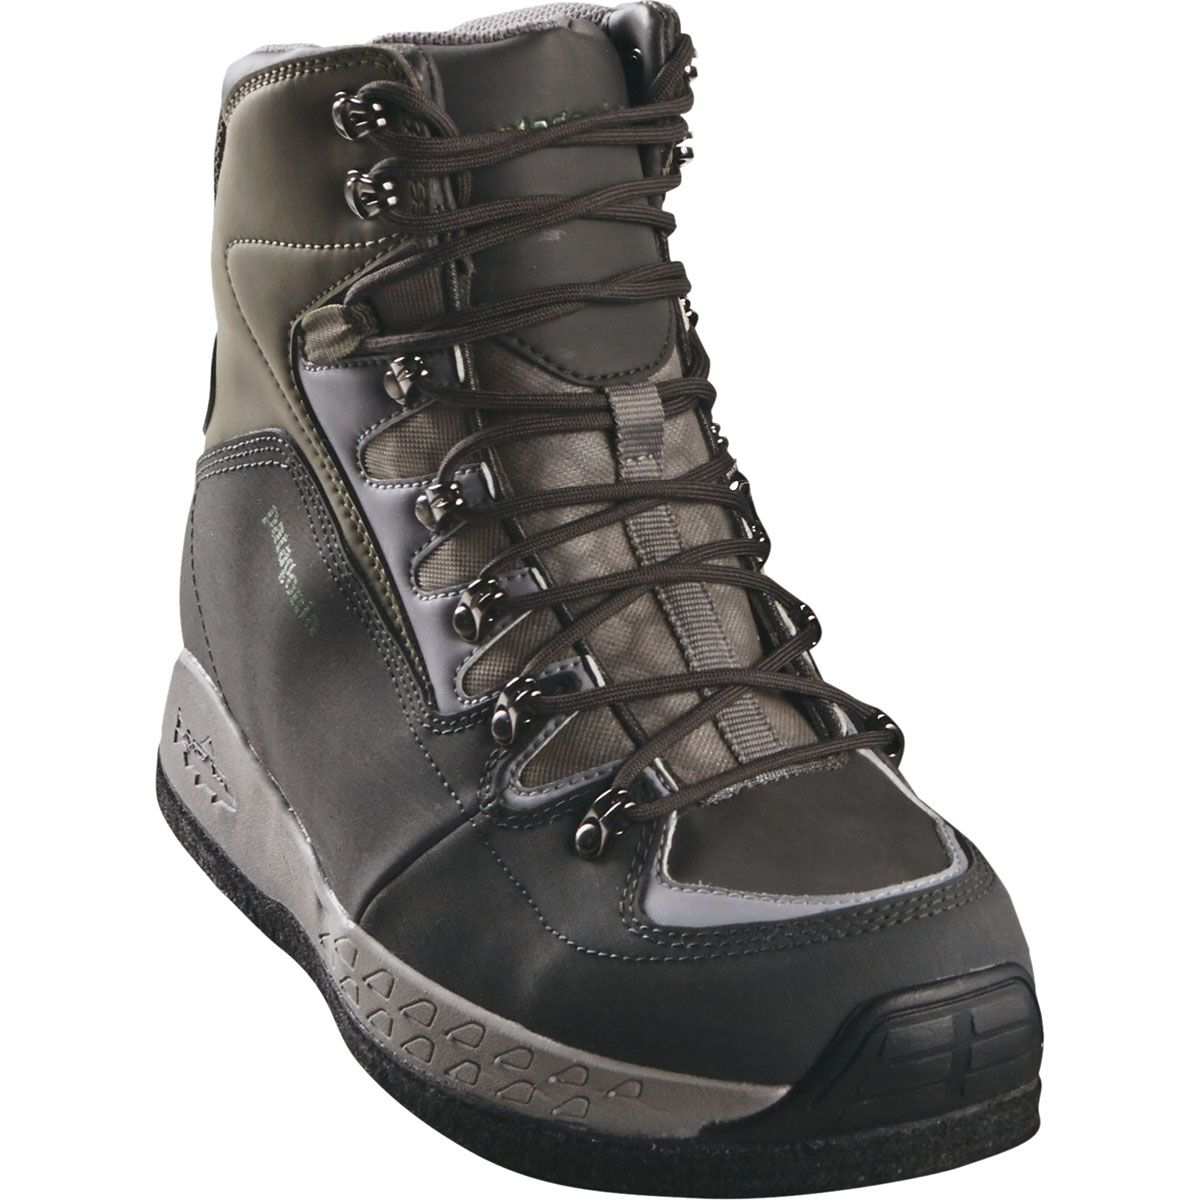 photo: Patagonia Ultralight Wading Boots - Felt wading boots